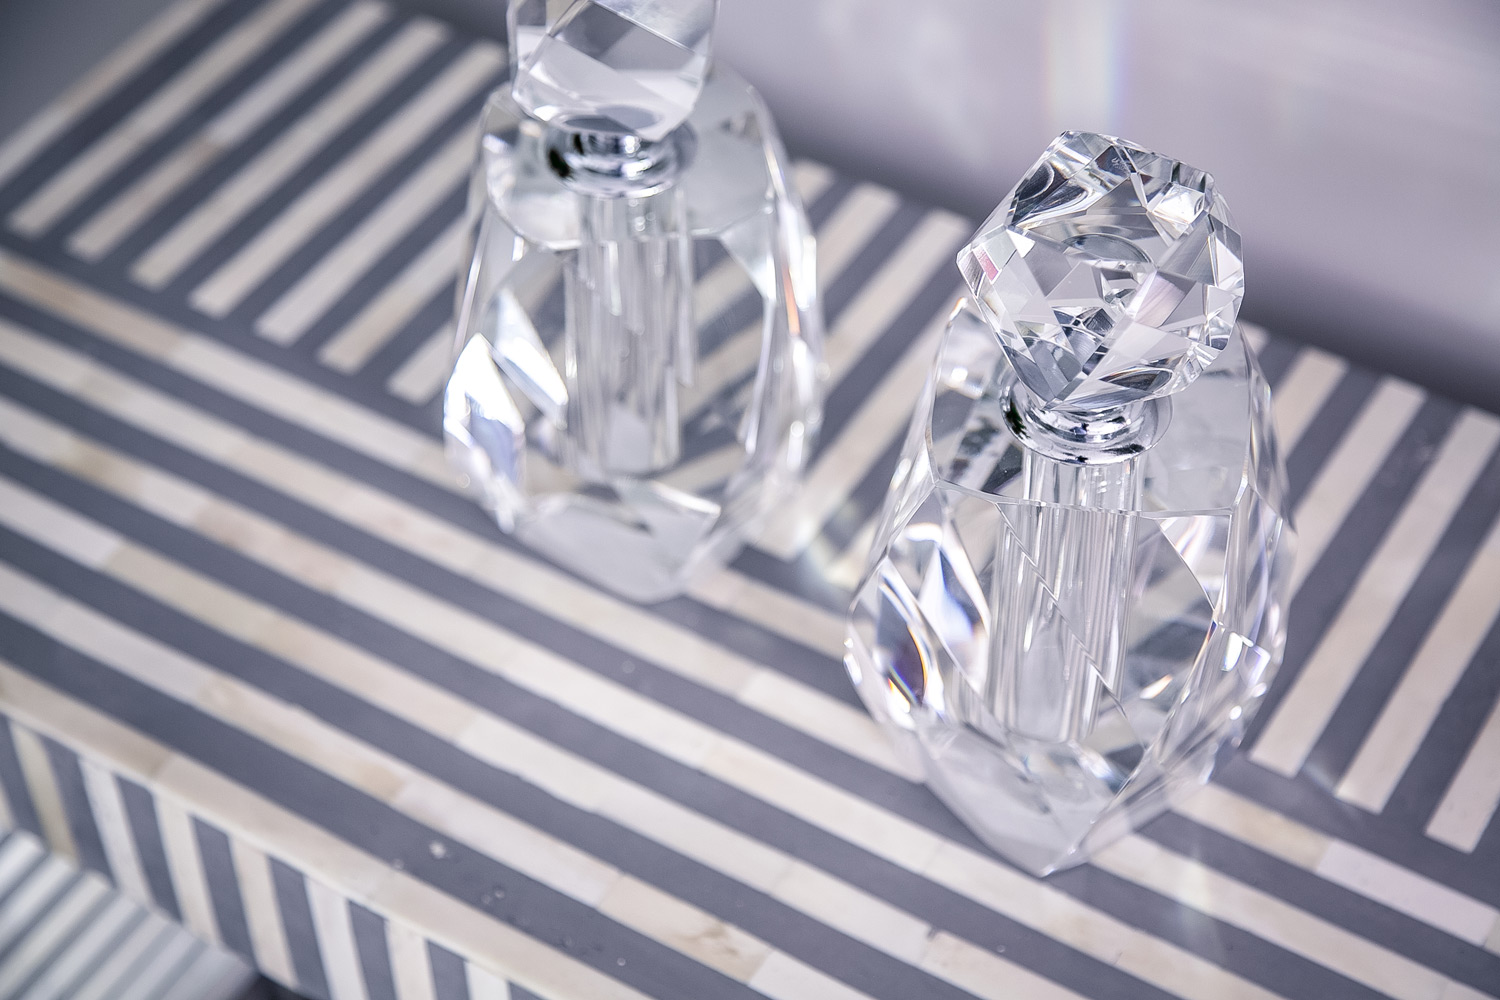 Striped bone inlay table with crystal decanters